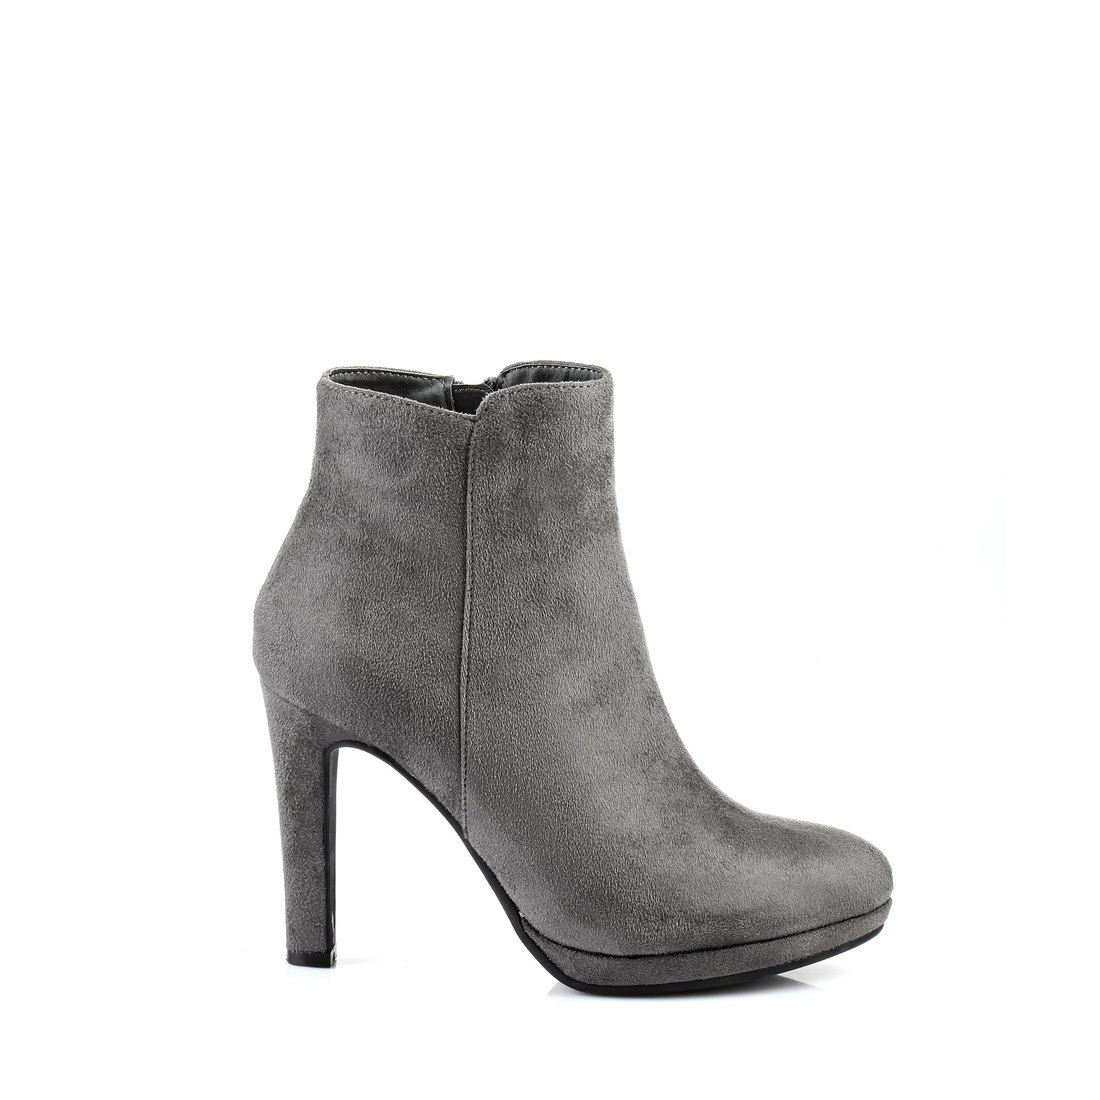 buffalo plateau ankle boots in grey buy online in buffalo online shop buffalo online shop. Black Bedroom Furniture Sets. Home Design Ideas